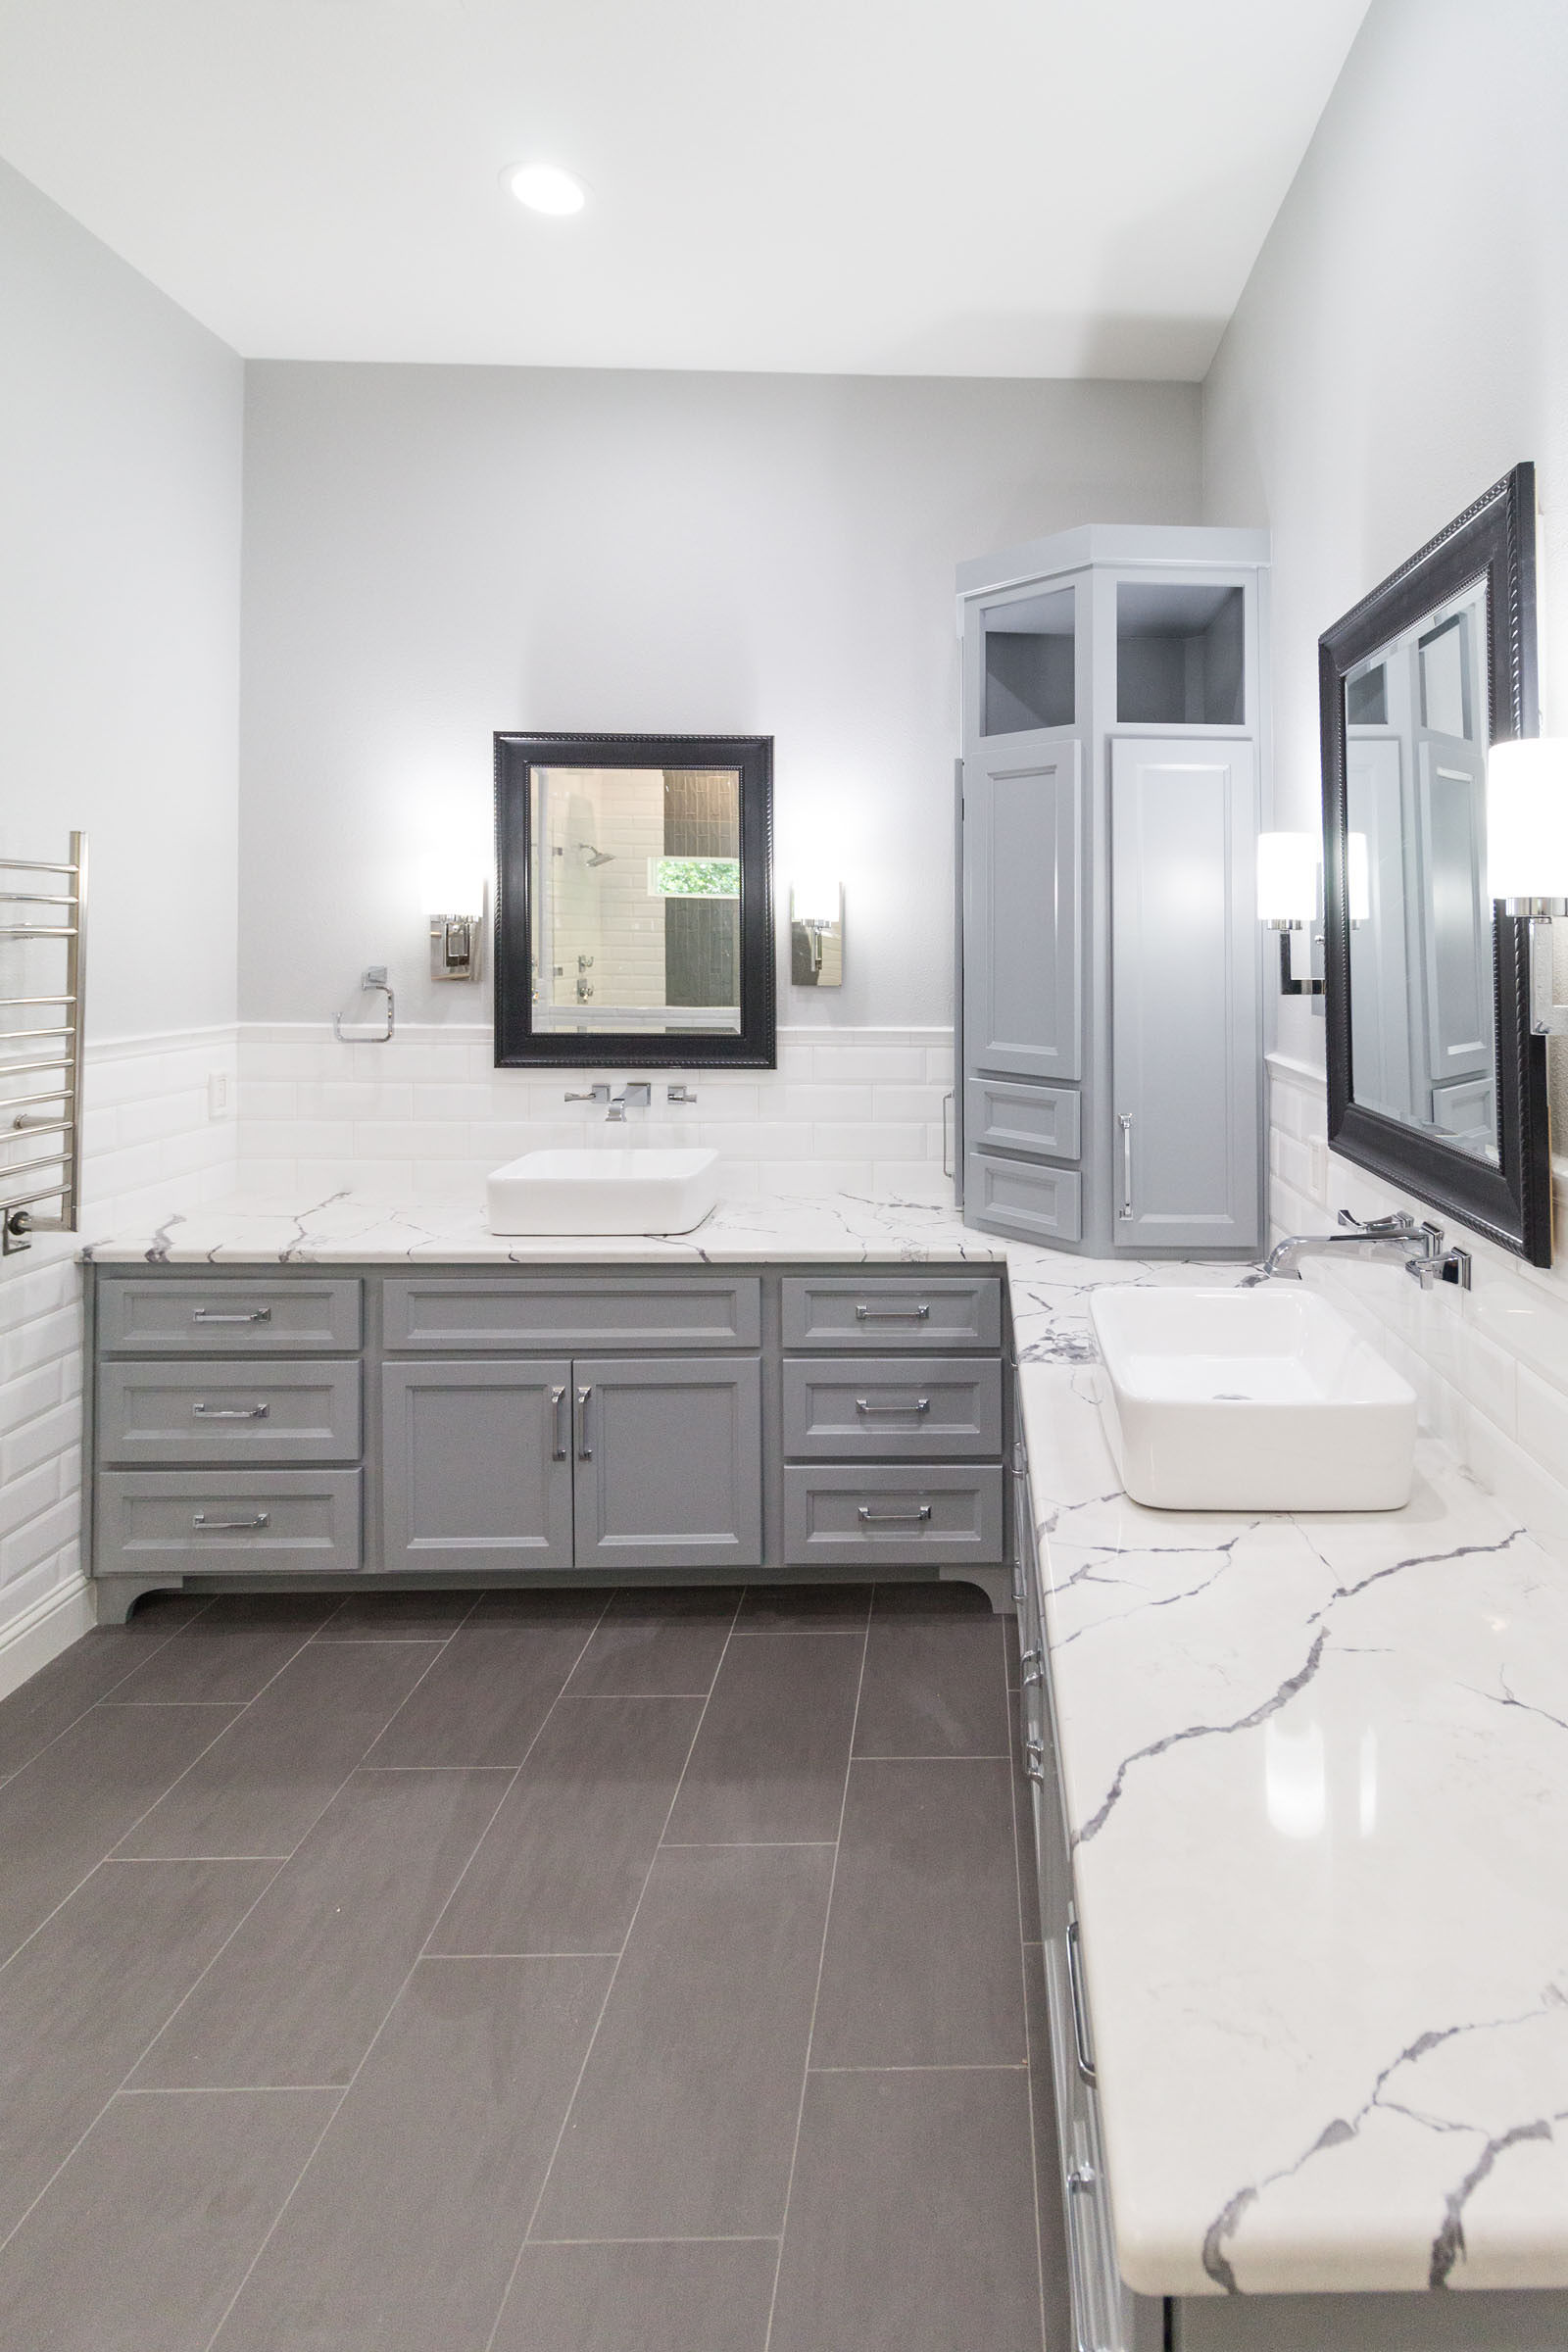 Contemporary bathroom remodel white granite, grey cabinets, clean and bright